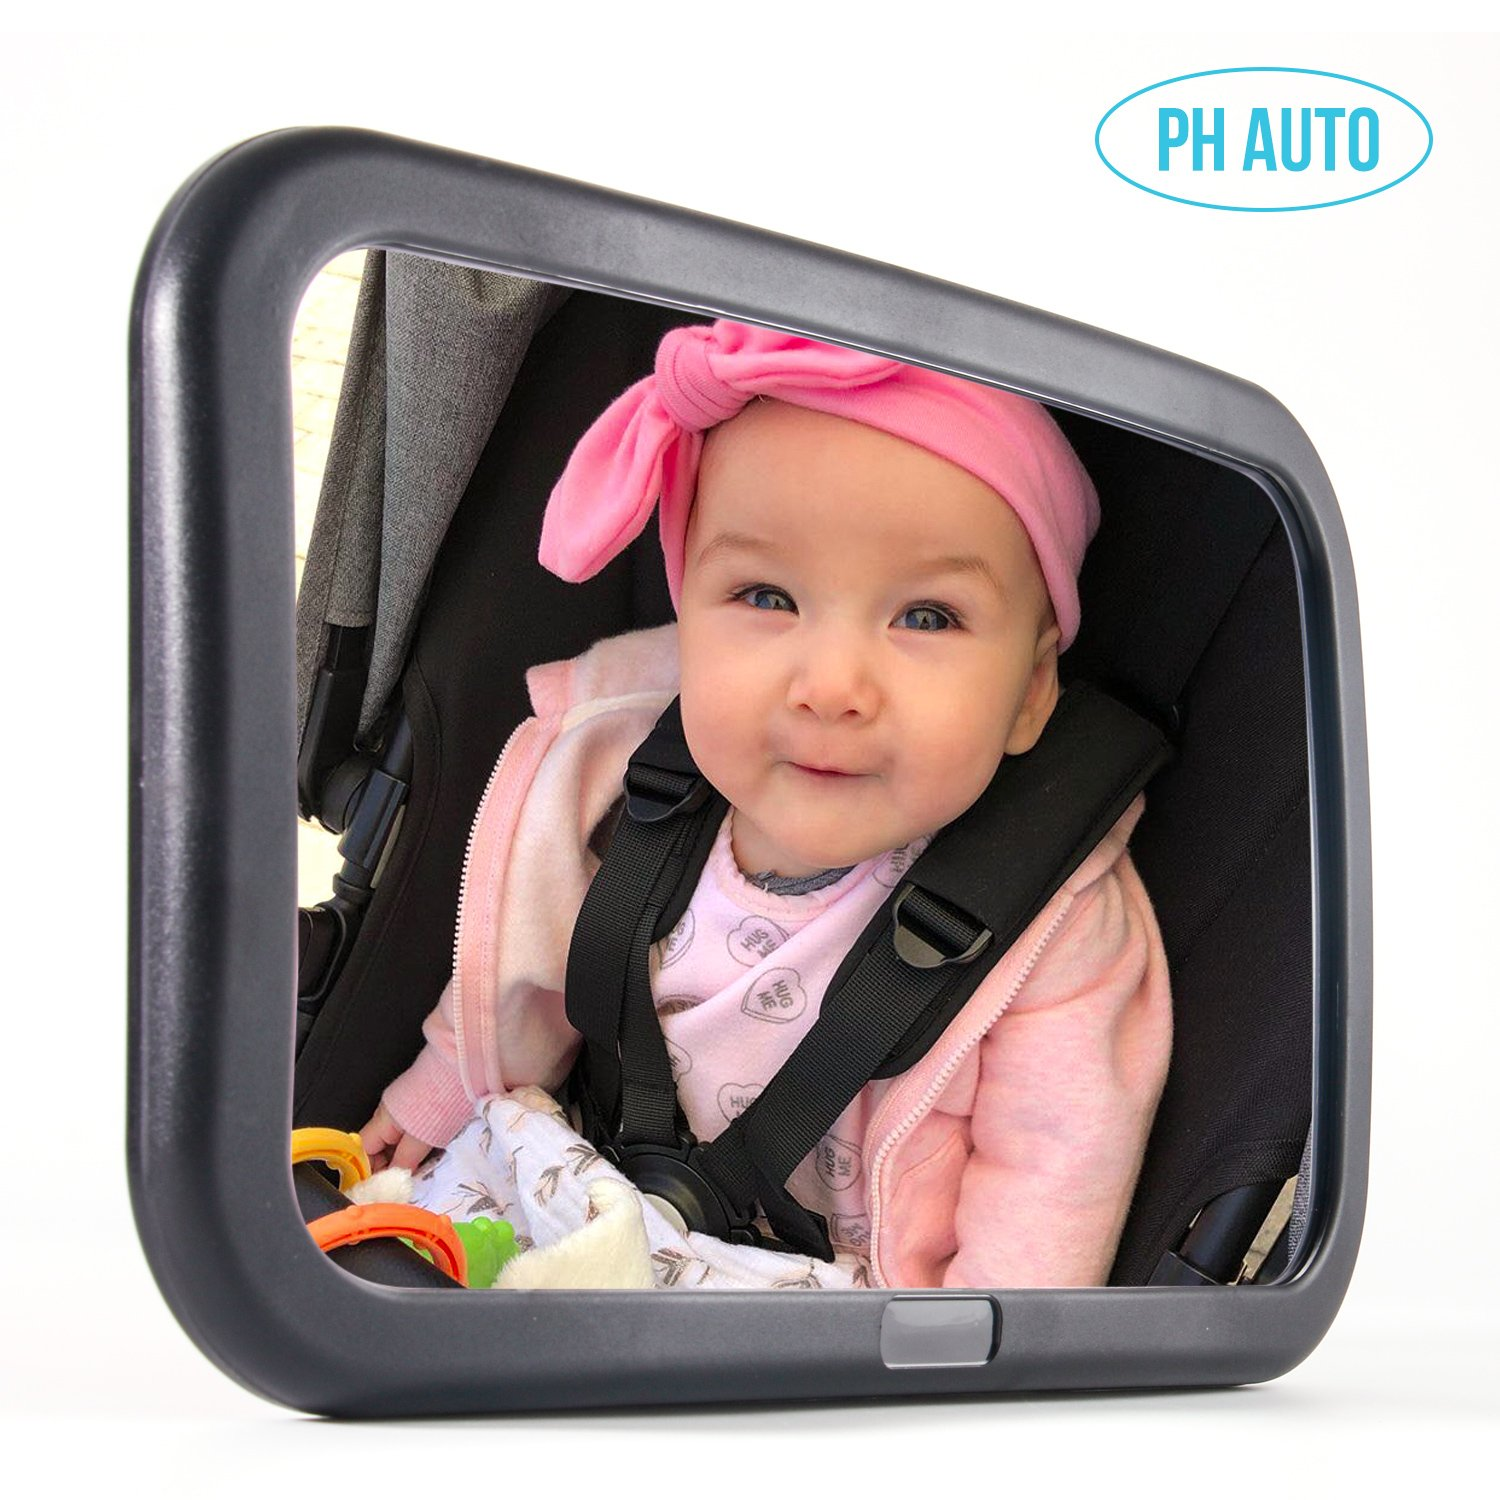 PH AUTO Baby Car Mirror for Backseat. Extra Large. W 12'' x H 7.5'' Wide View of Rear Facing Infant. Fully Assembled. Shatterproof. Crystal Clearview. Best Baby Shower Gift by PH AUTO